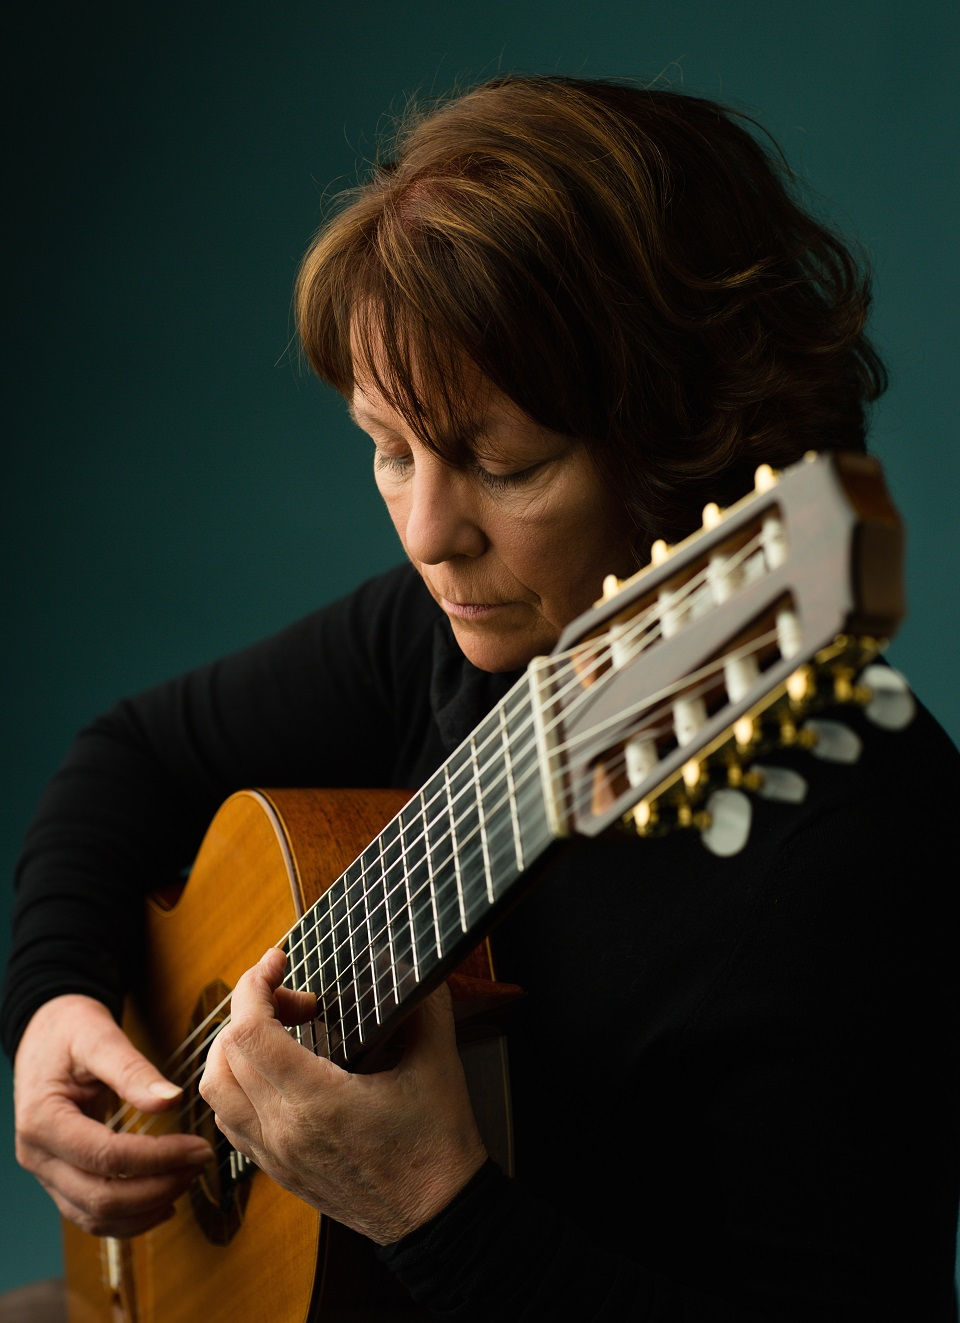 2018_03_guitare_marleen_peeters_web